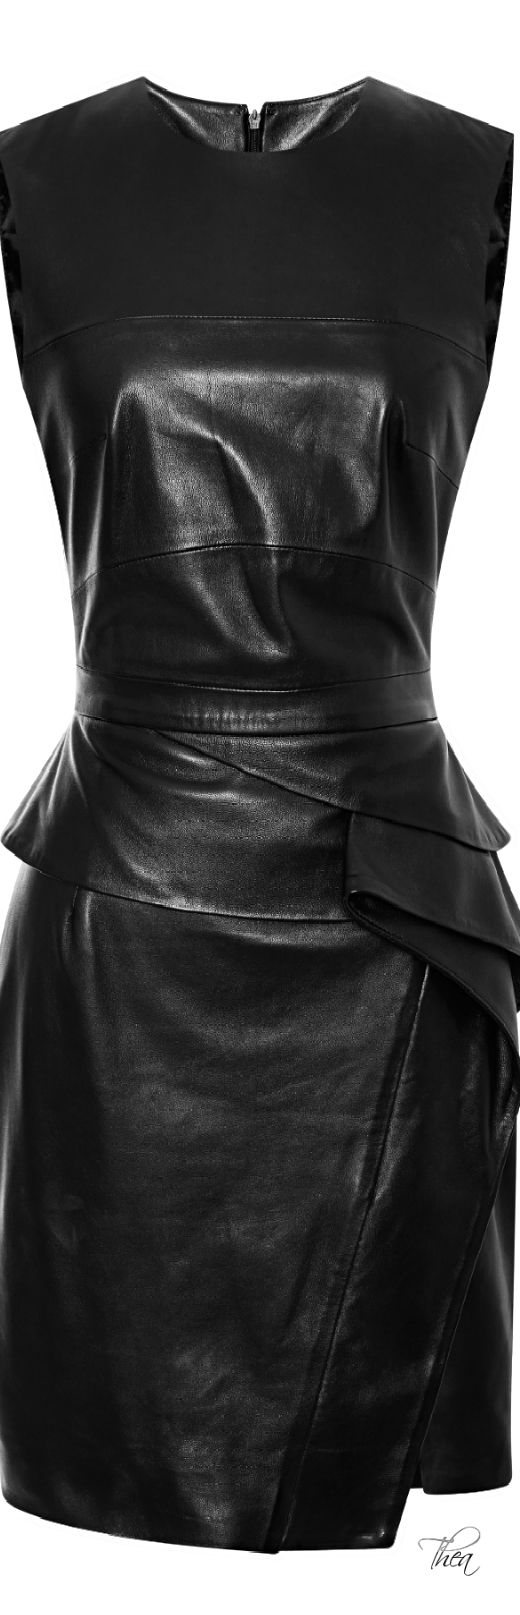 Elie Saab Resort 2015, Black Sleeveless Leather Dress | The House of Beccaria~                                                                                                                                                                                 More